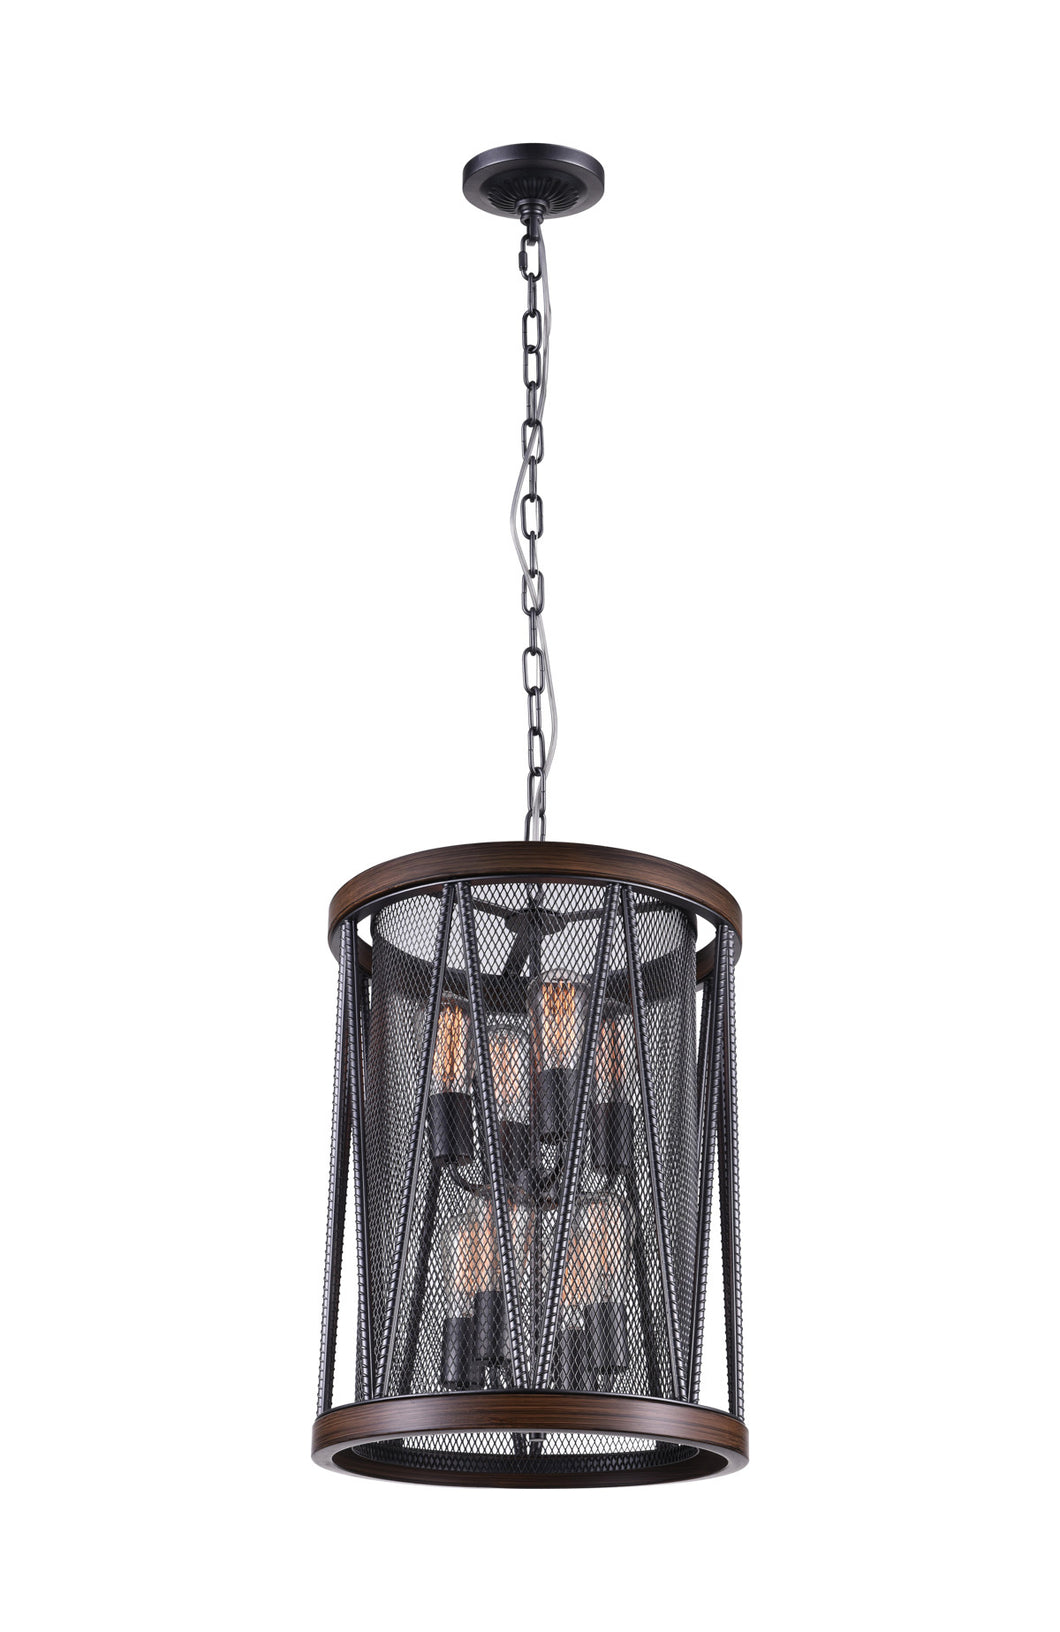 8 Light Drum Shade Chandelier with Pewter finish